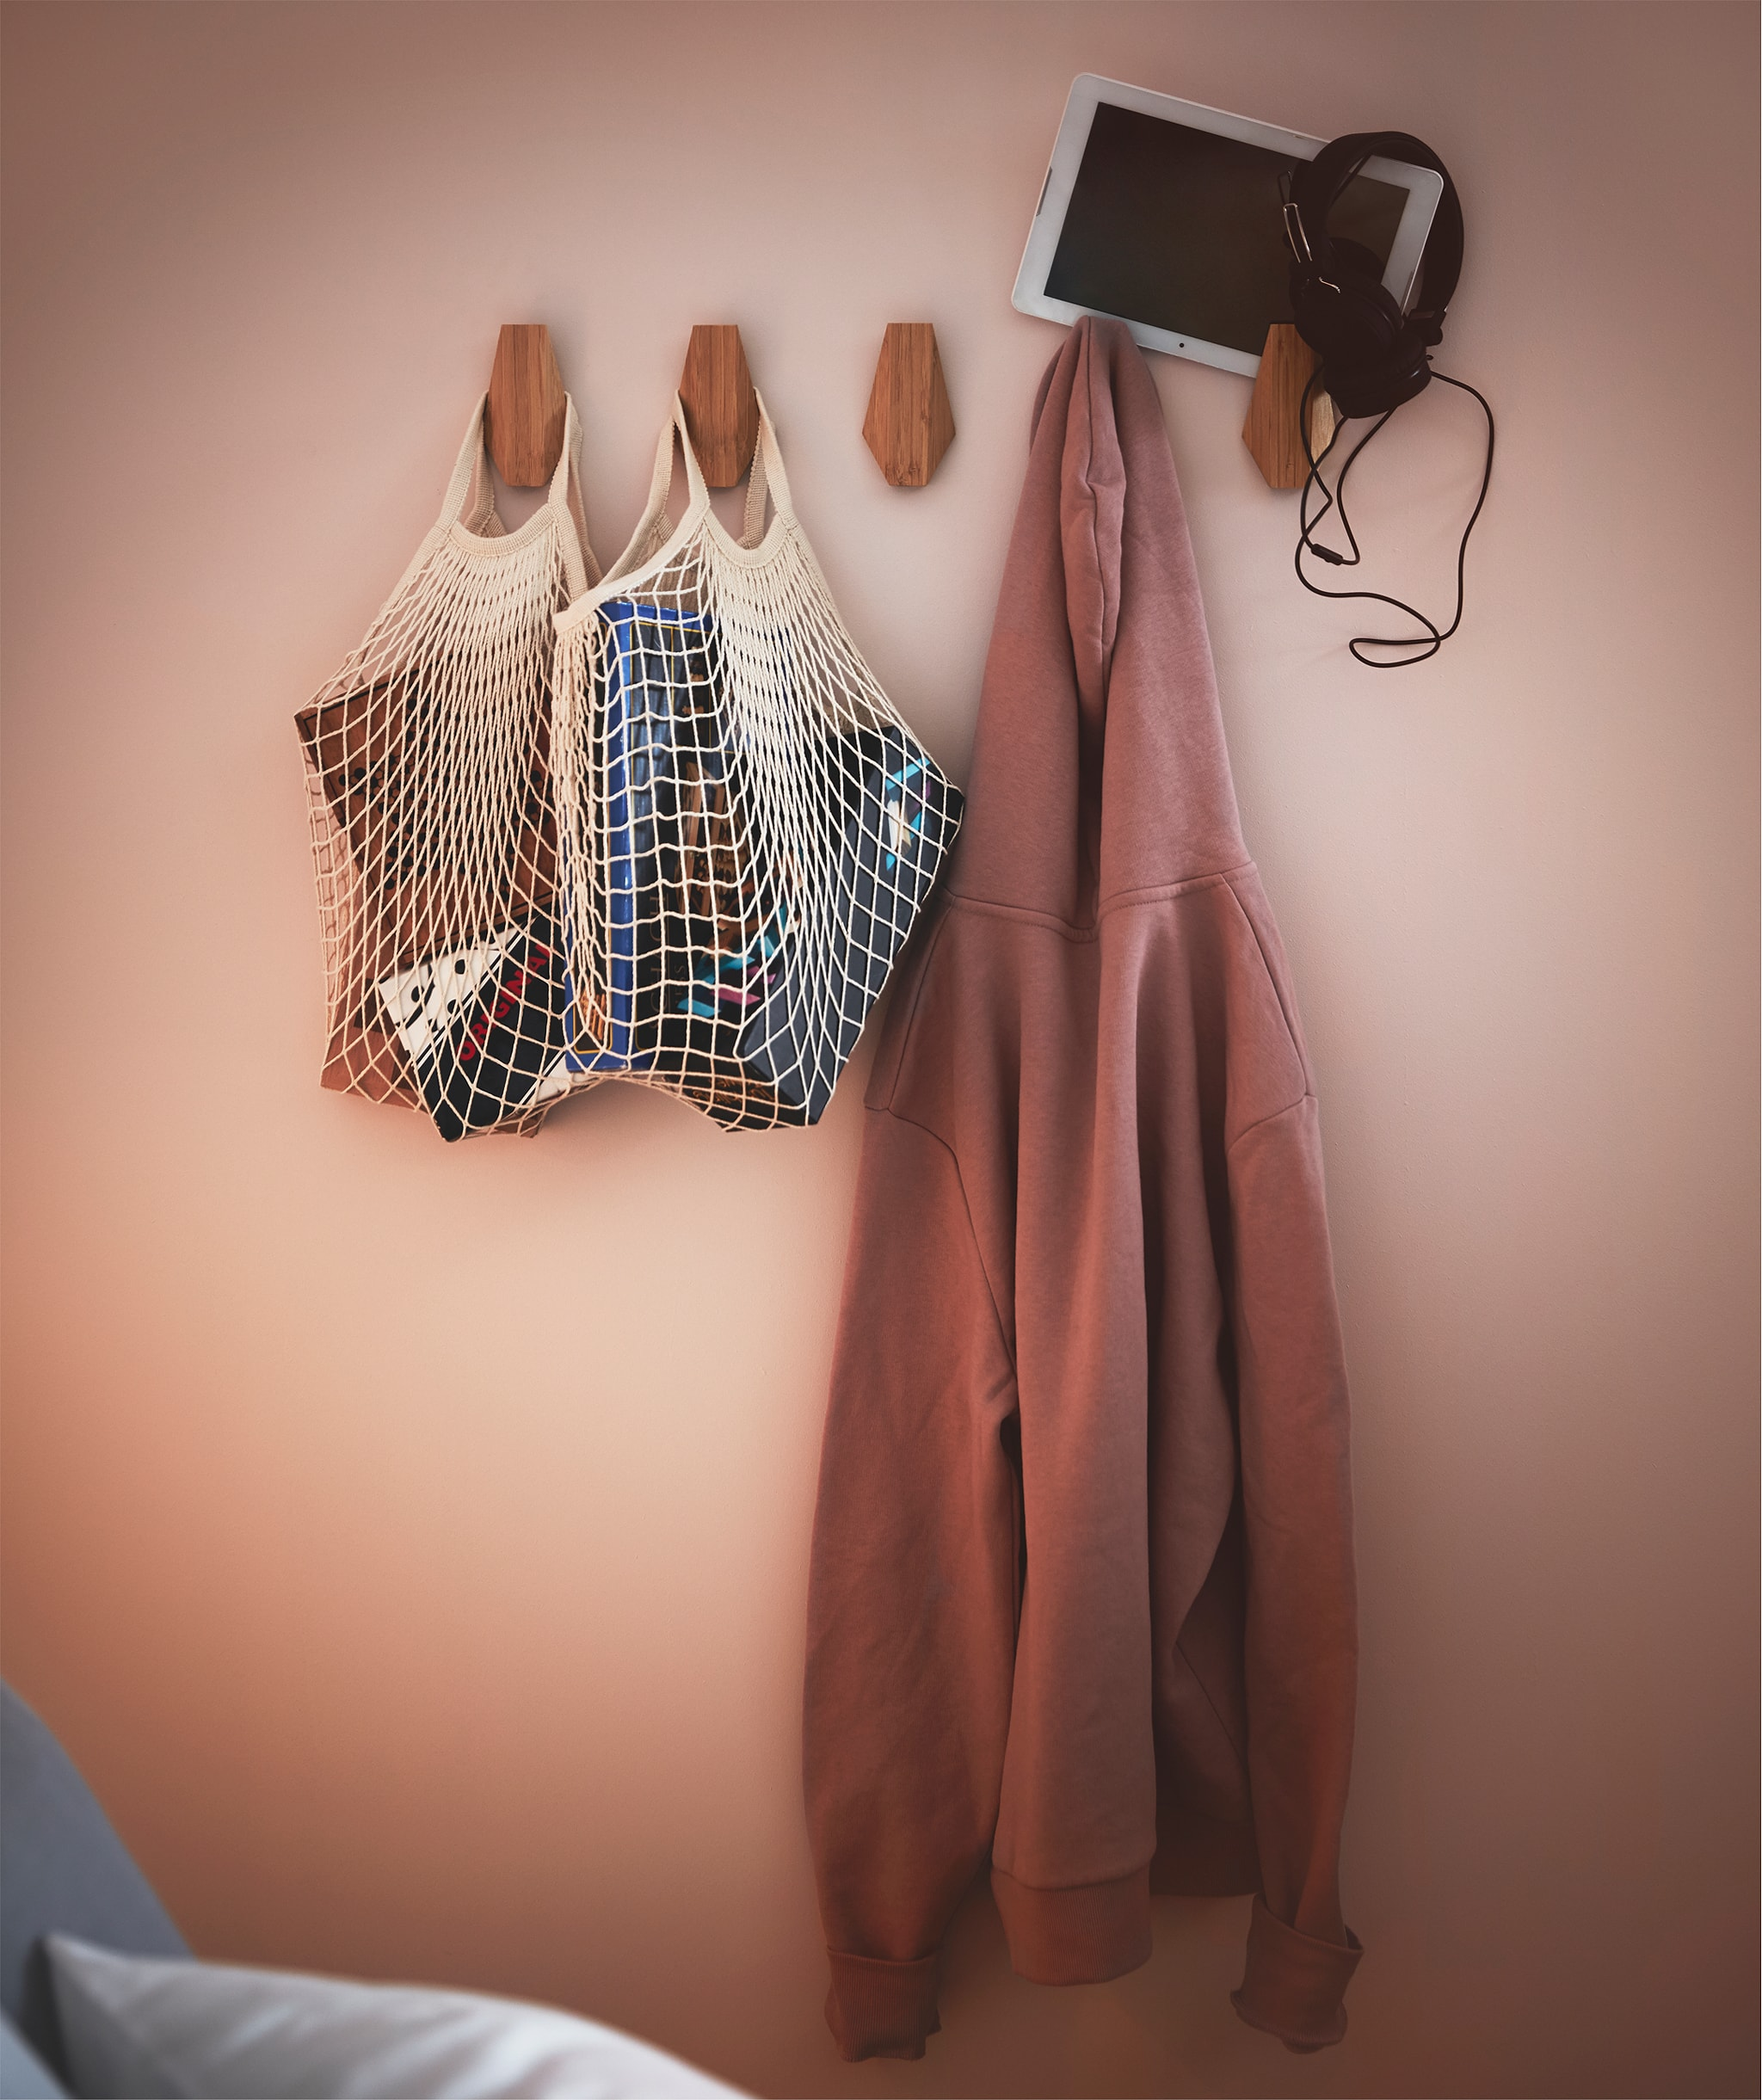 Section of bedroom wall fitted with row of SKUGGIS bamboo hooks holding filled net bags, a hoodie and a tablet with earphones.